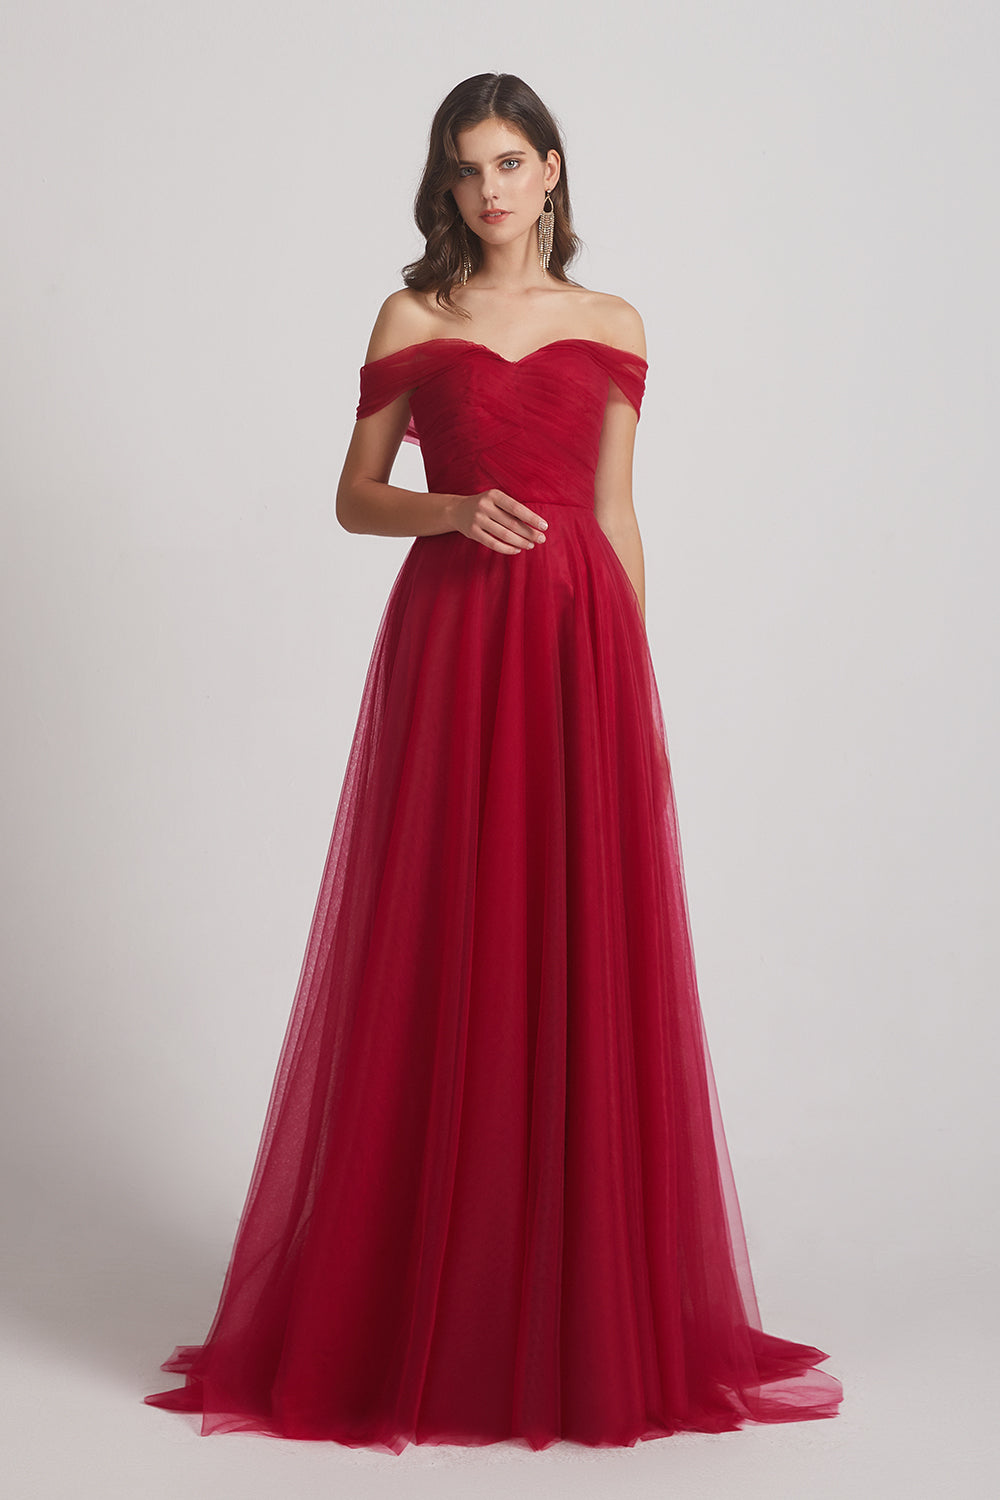 convertible a-line pleated bridesmaids gowns